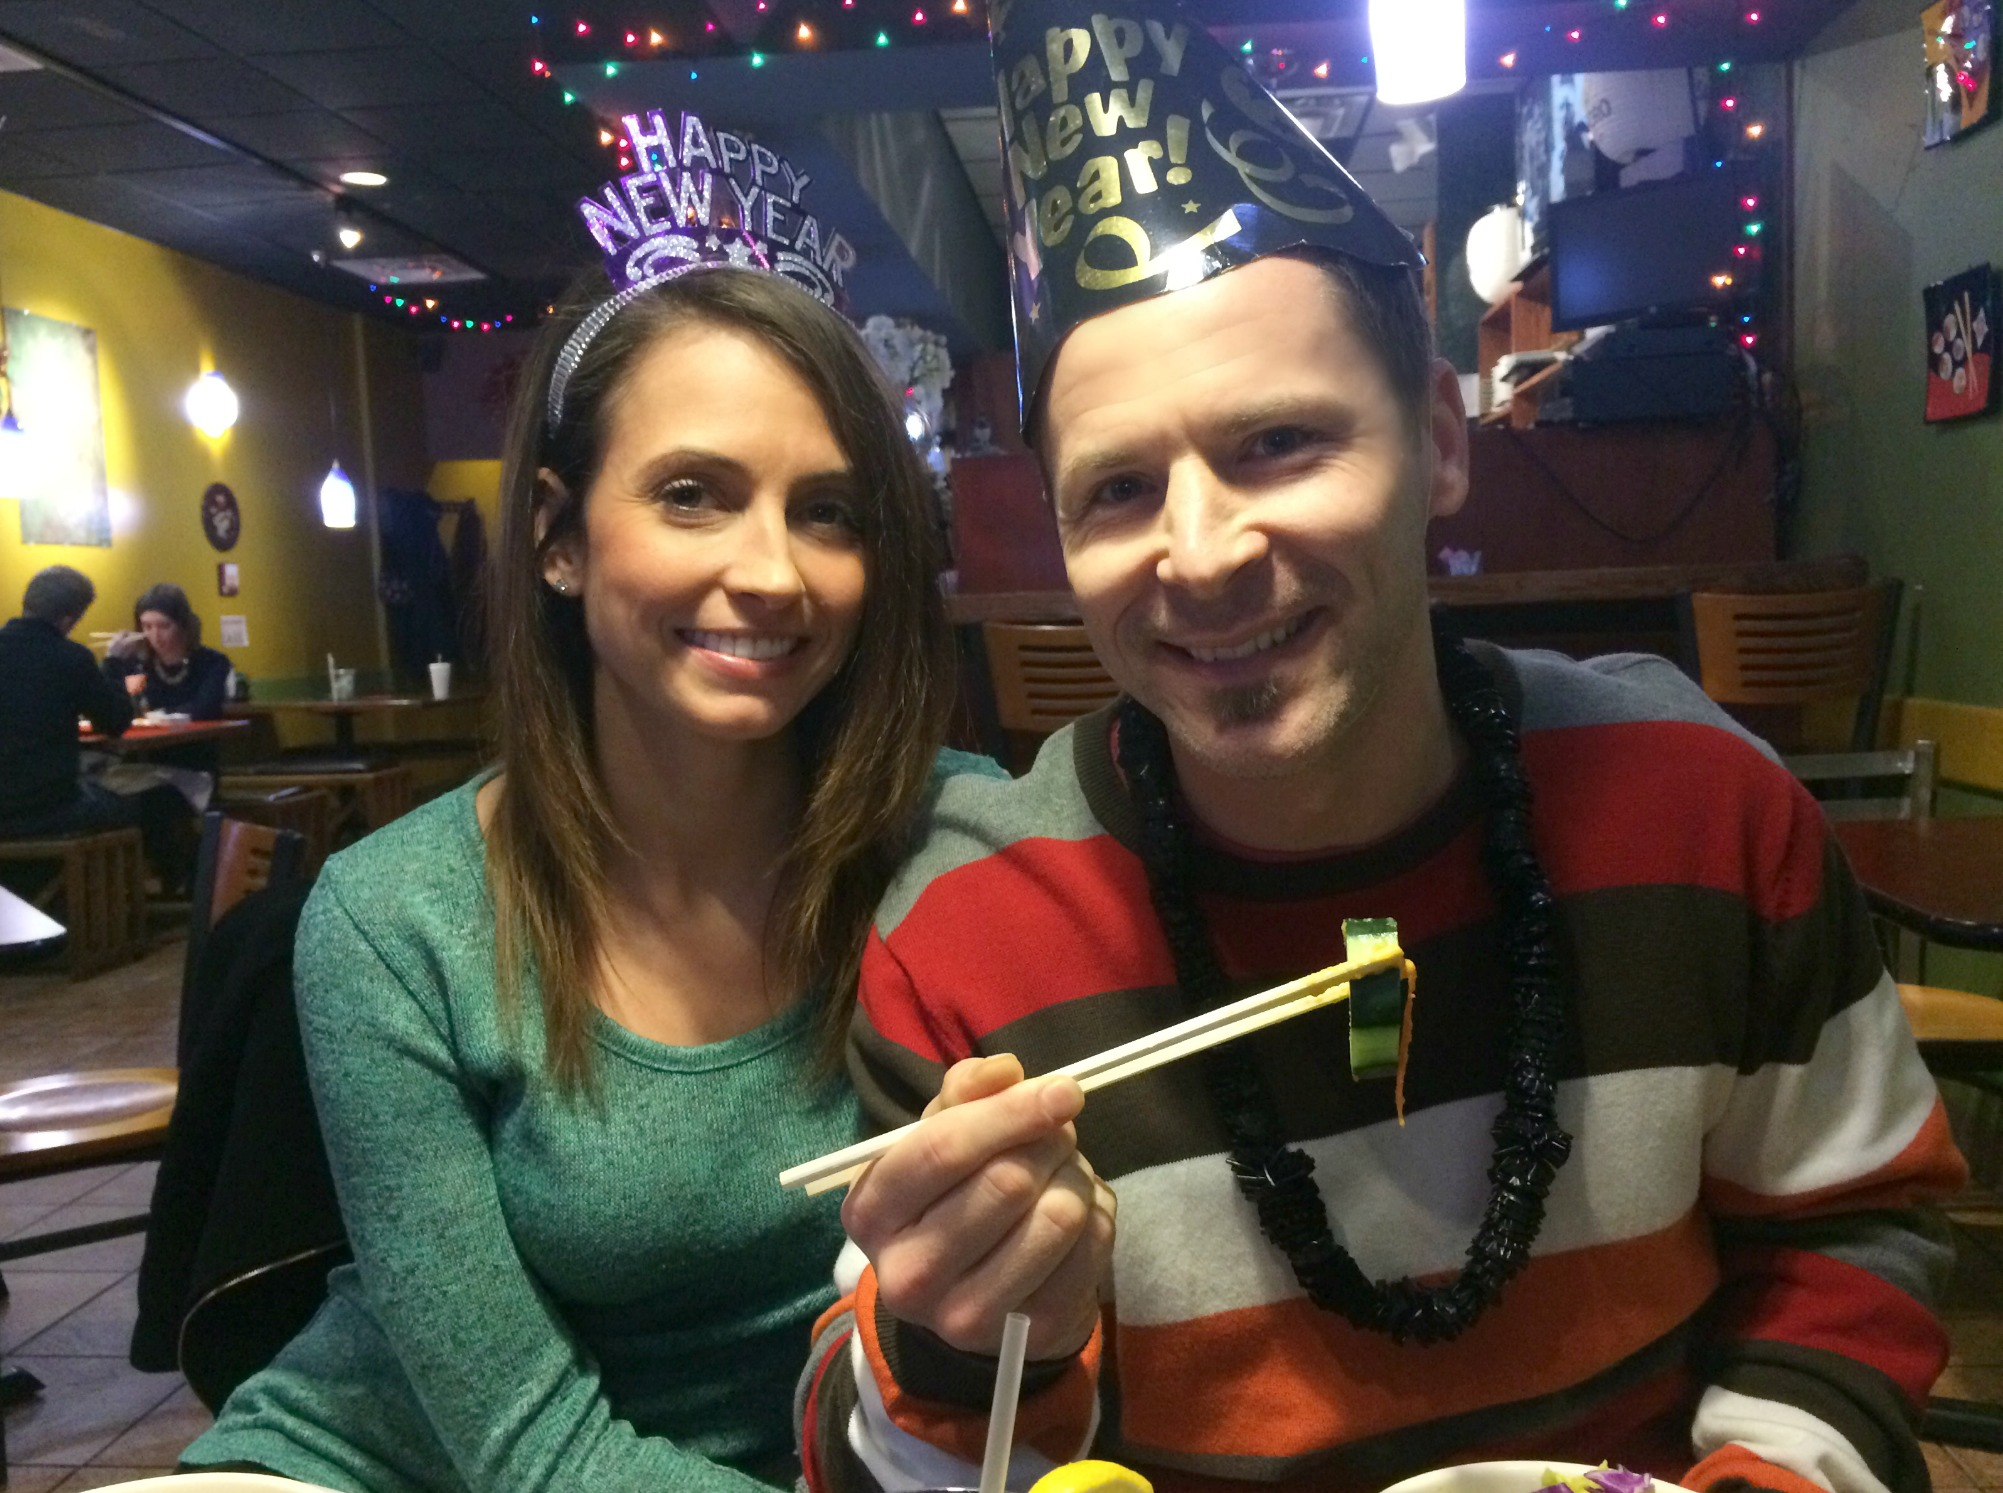 New Years Eve at sumo sushi